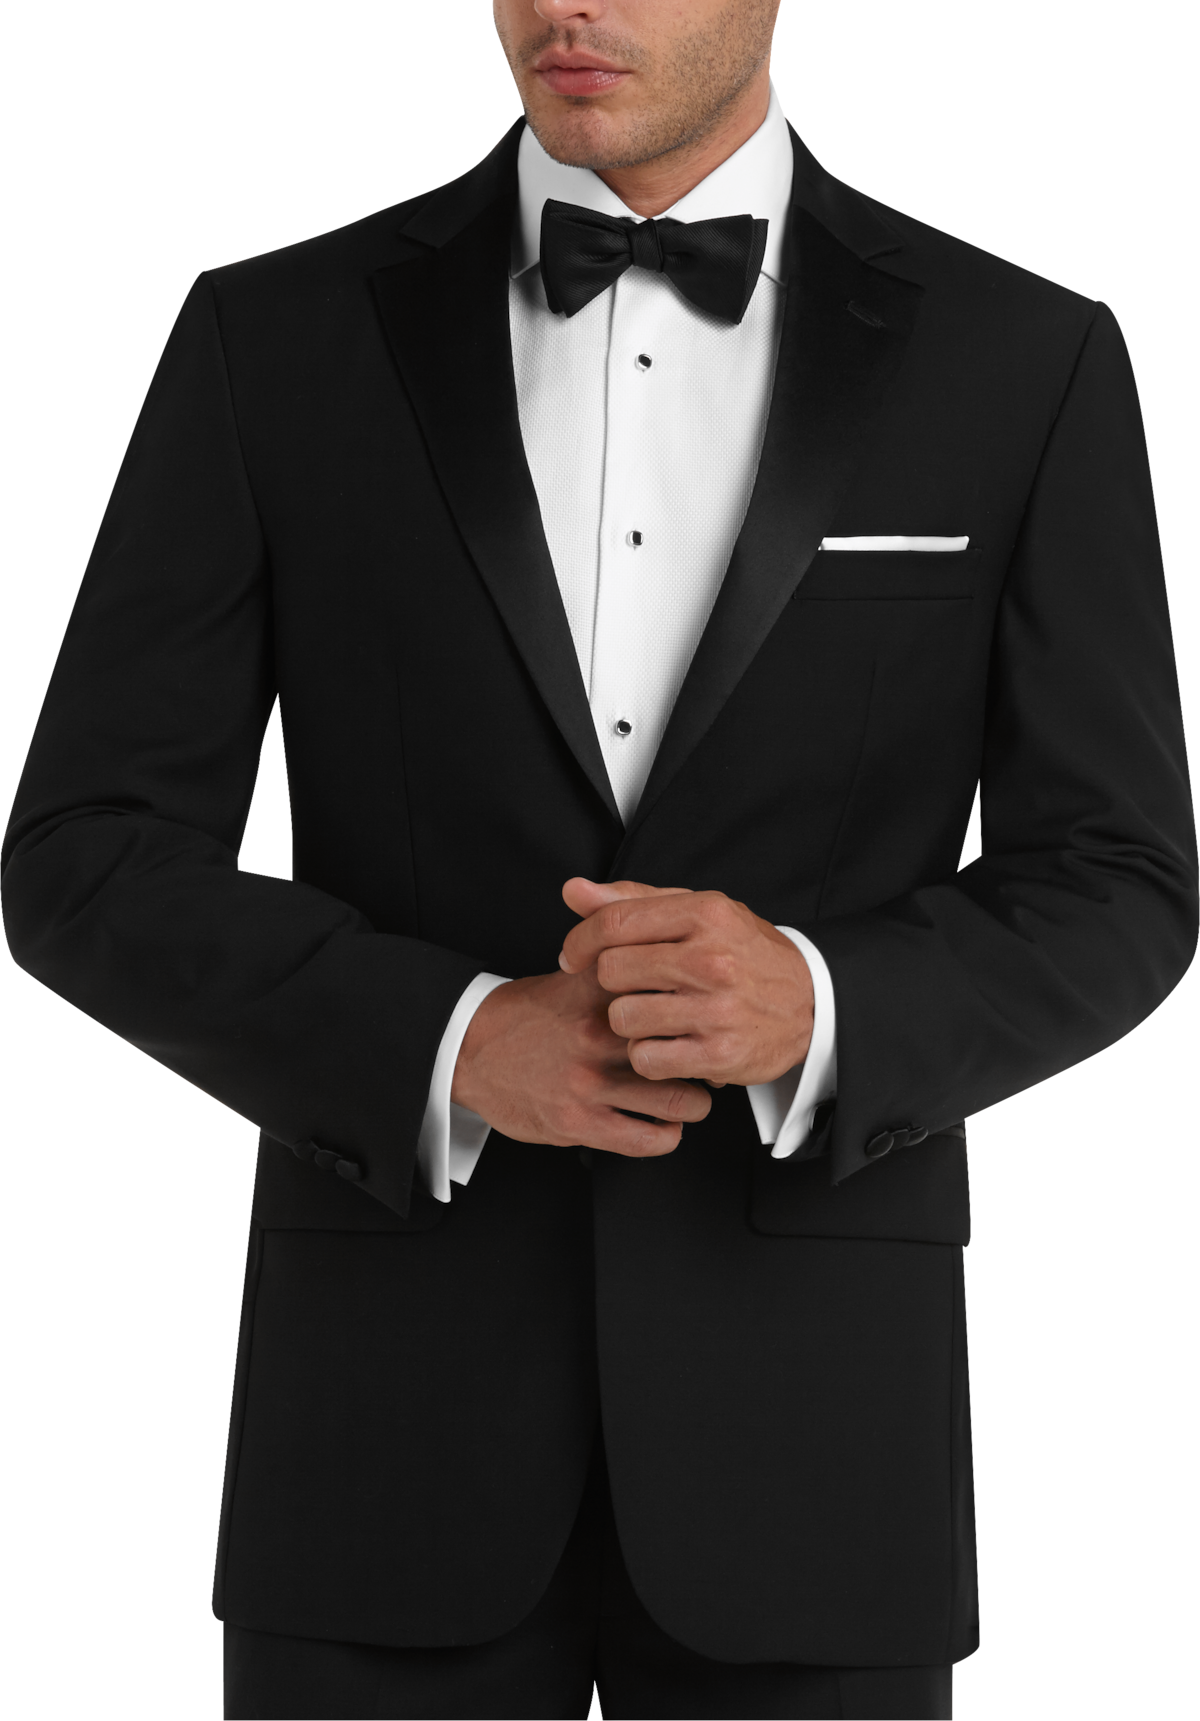 Find the closest Men's Wearhouse men's suit & clothing store near you. Get address, phone & directions from over + locations nationwide.